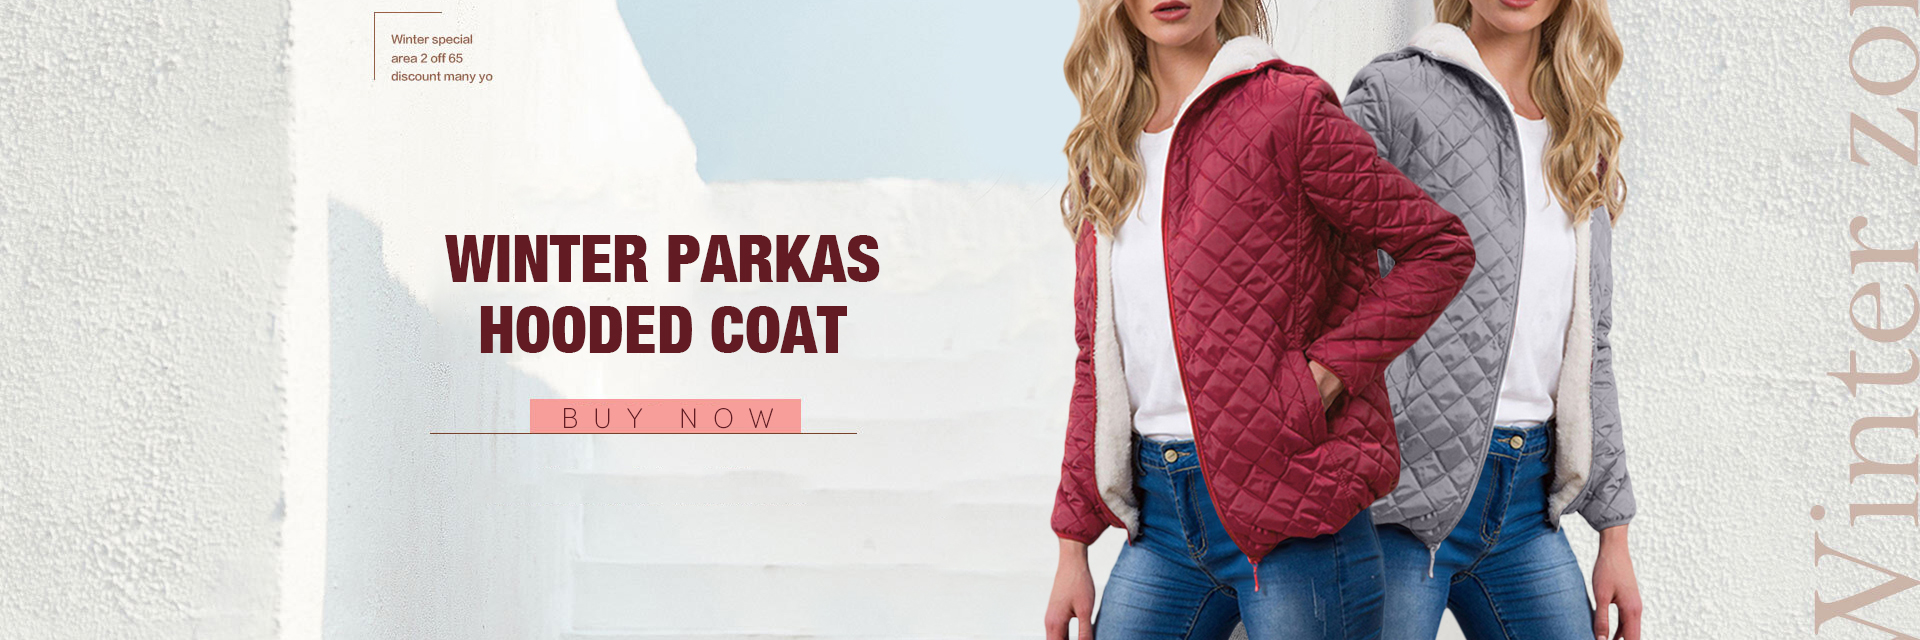 He5527d3eadd046888c56468adc645ab6a Women Windproof Long Hooded Jackets Waist Tightening With Zip Thin Outwear Multi Color Autumn Winter Coats Sporting Outdoor Coat